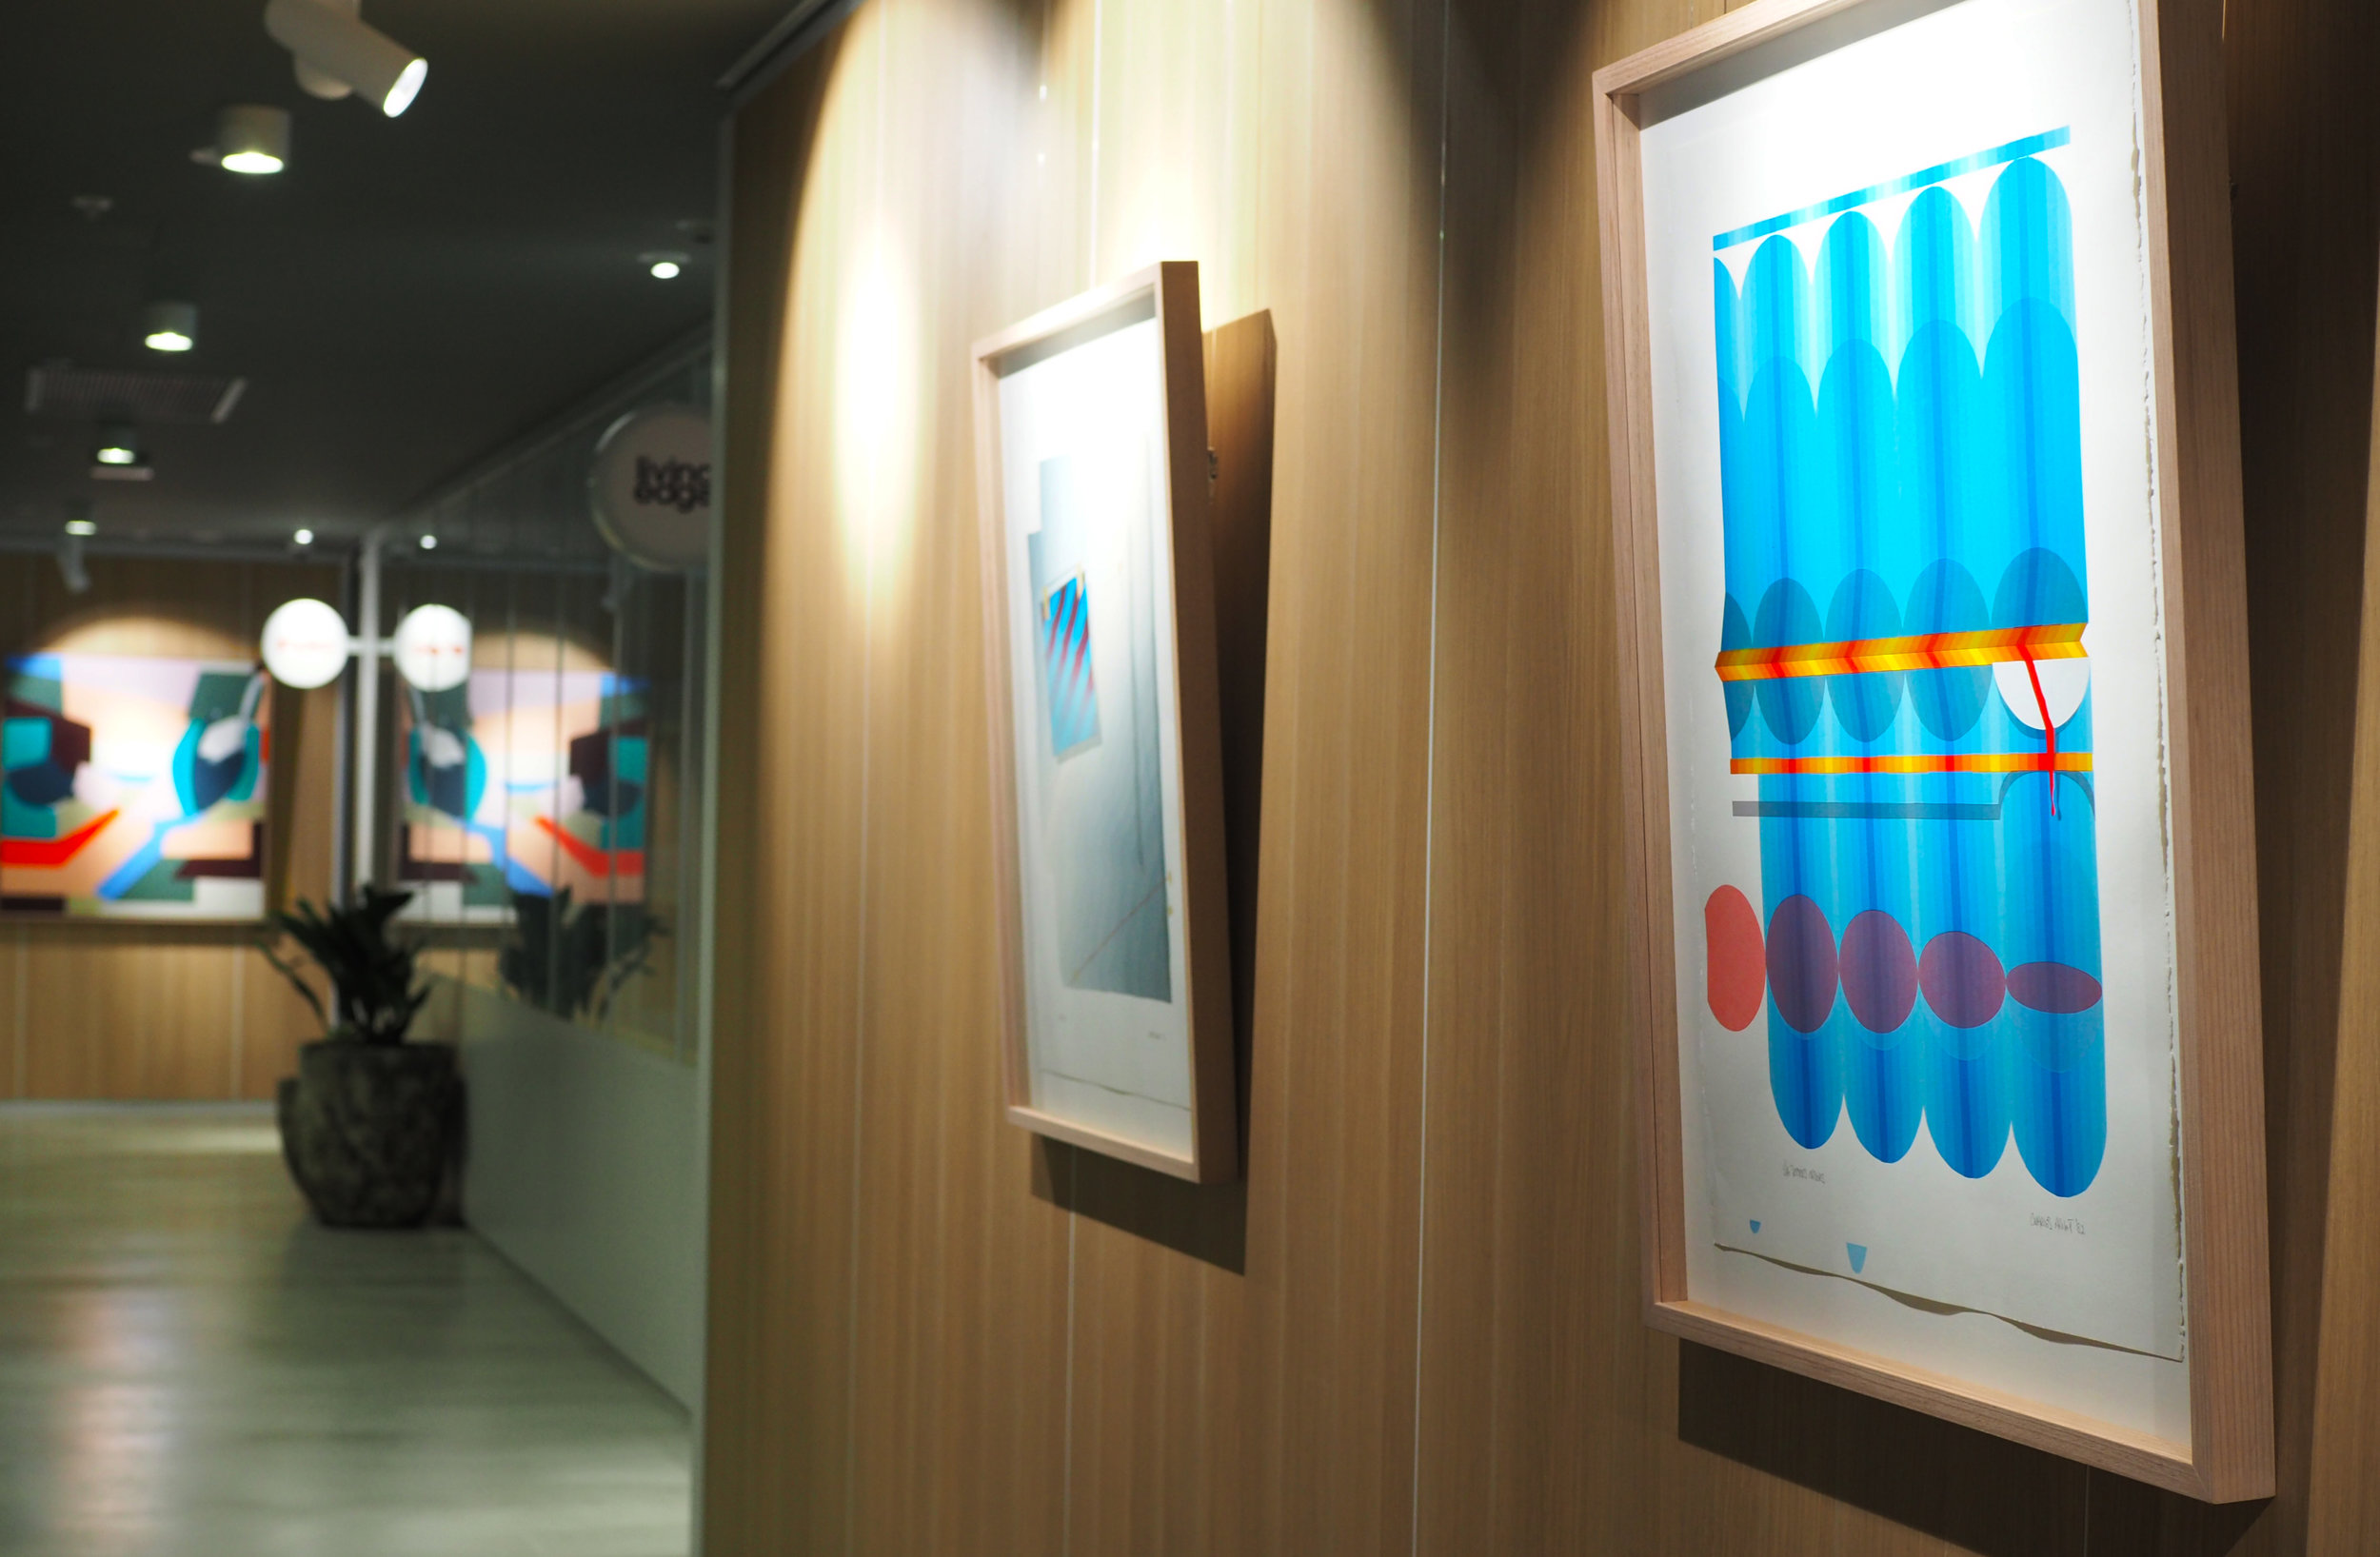 The curated artworks in situ at the Dexus Market Street offices. Credit: Art Pharmacy Consulting